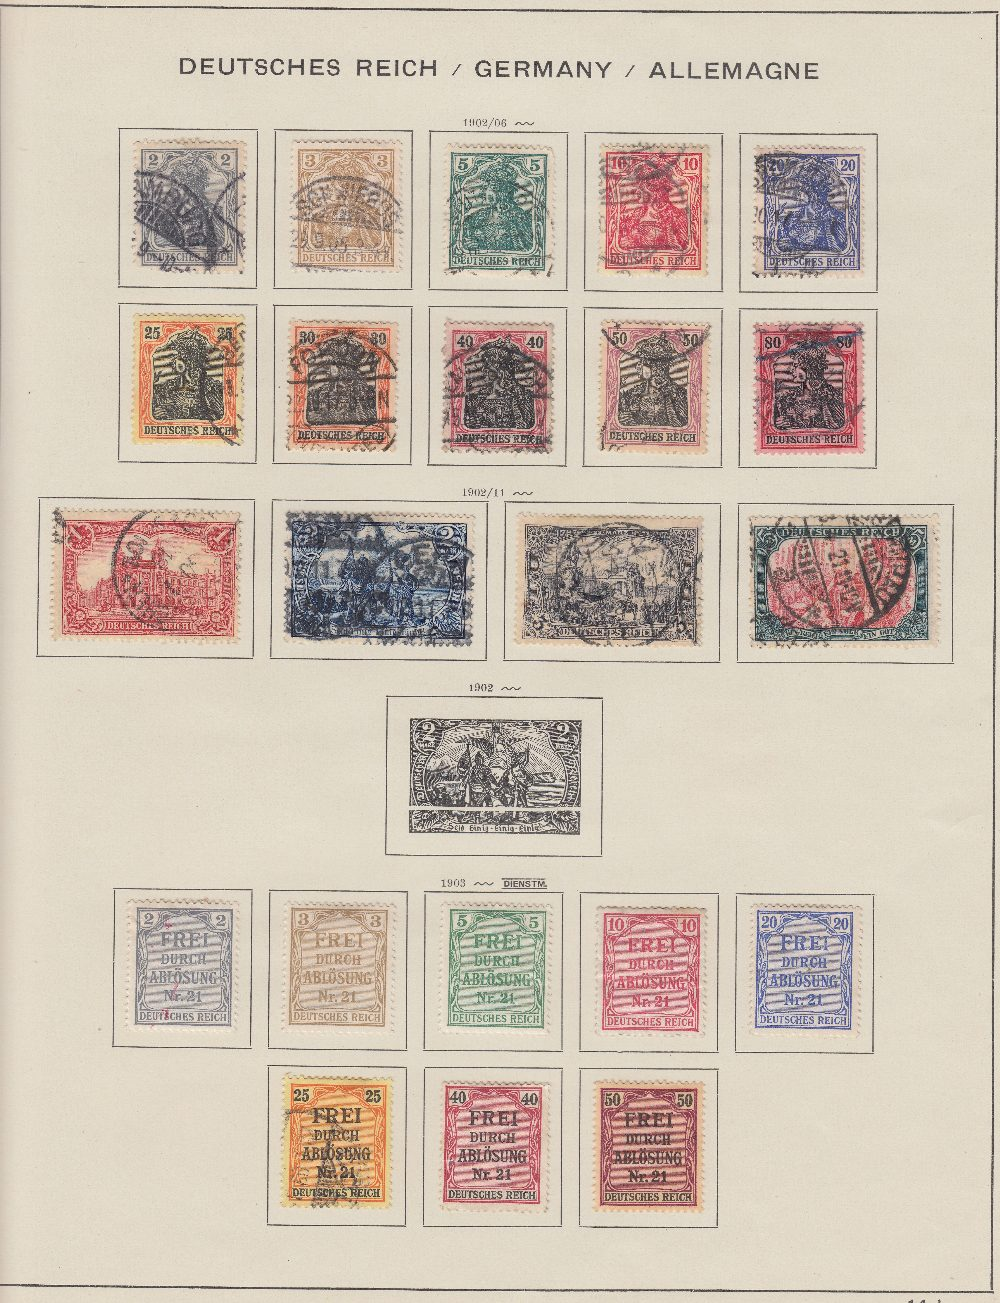 STAMPS : Two large Schaubek albums with Europe up to 1933, reasonably well filled. - Image 4 of 4